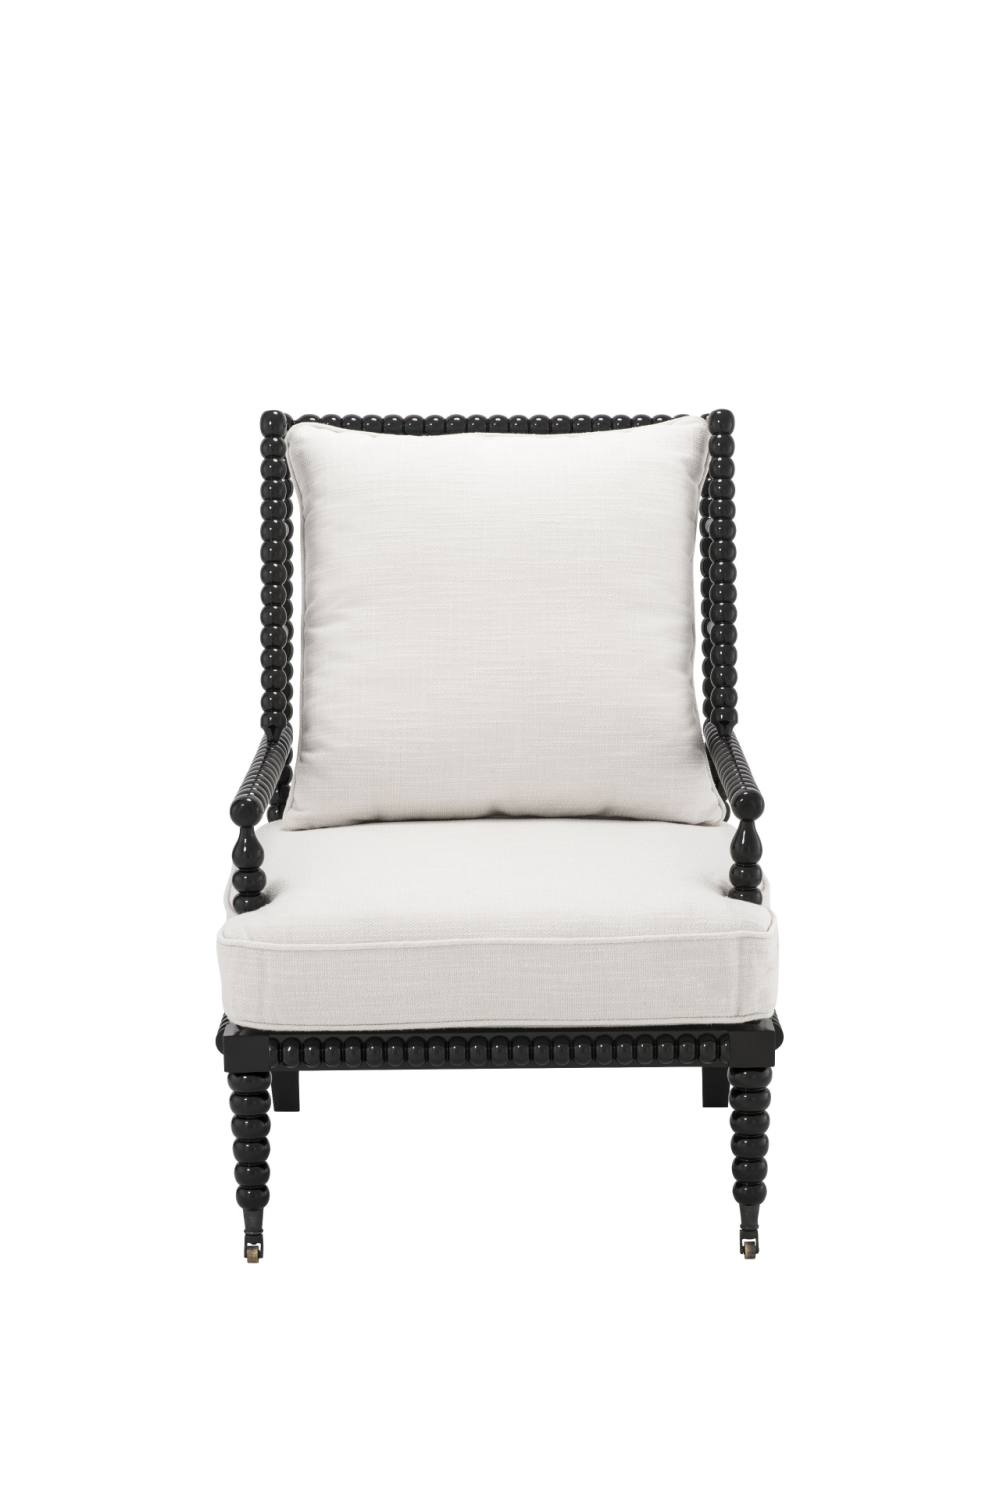 Off-White Pillow Back Accent Chair | Eichholtz | Eichholtz Retailer